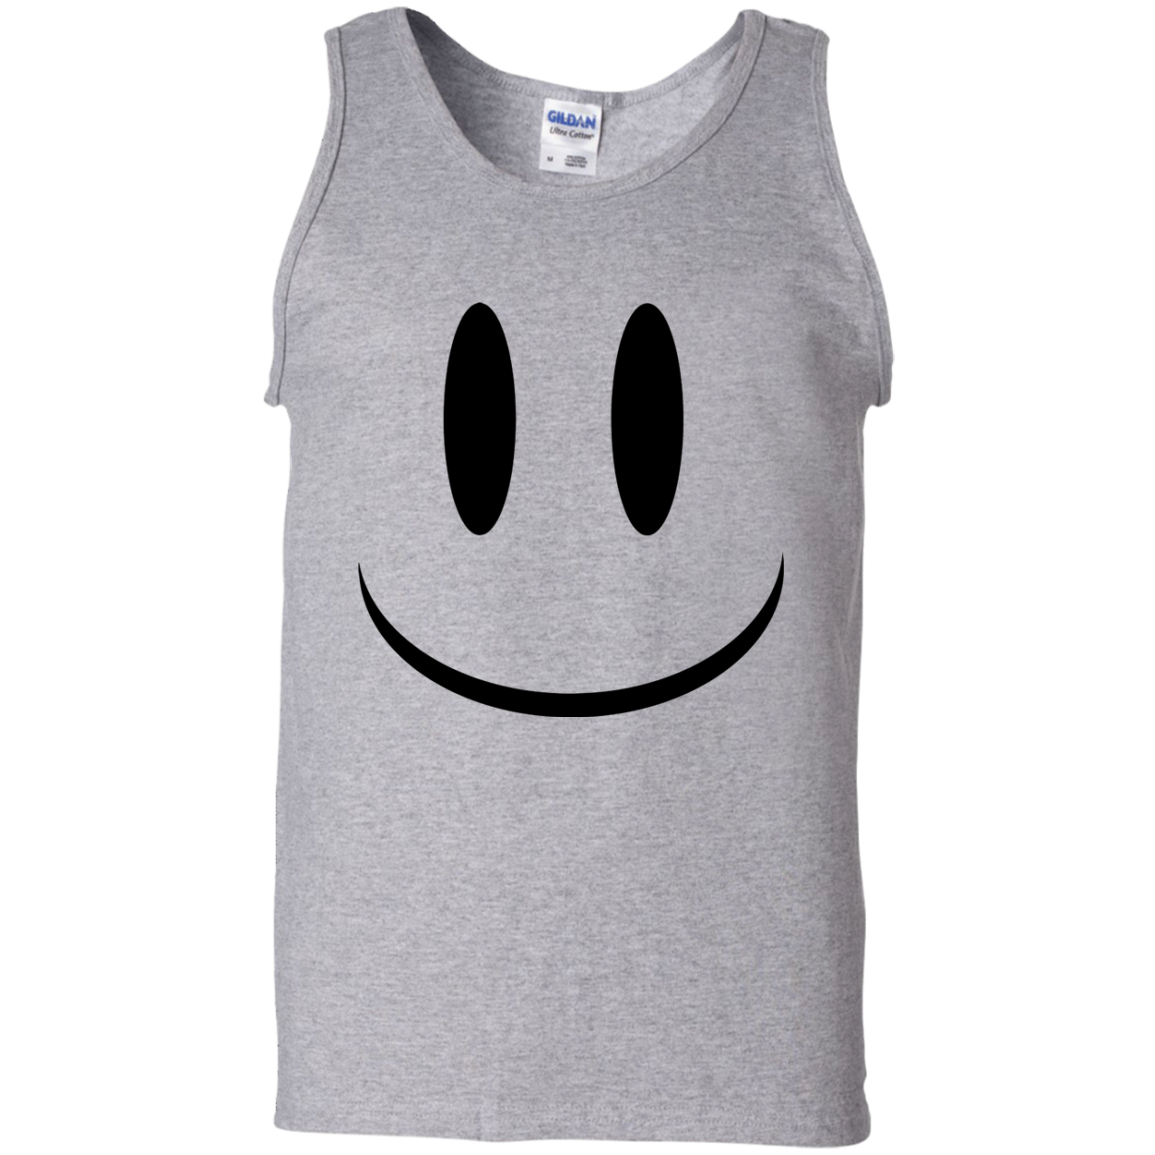 Smiley Face V1 100% Cotton Tank Top